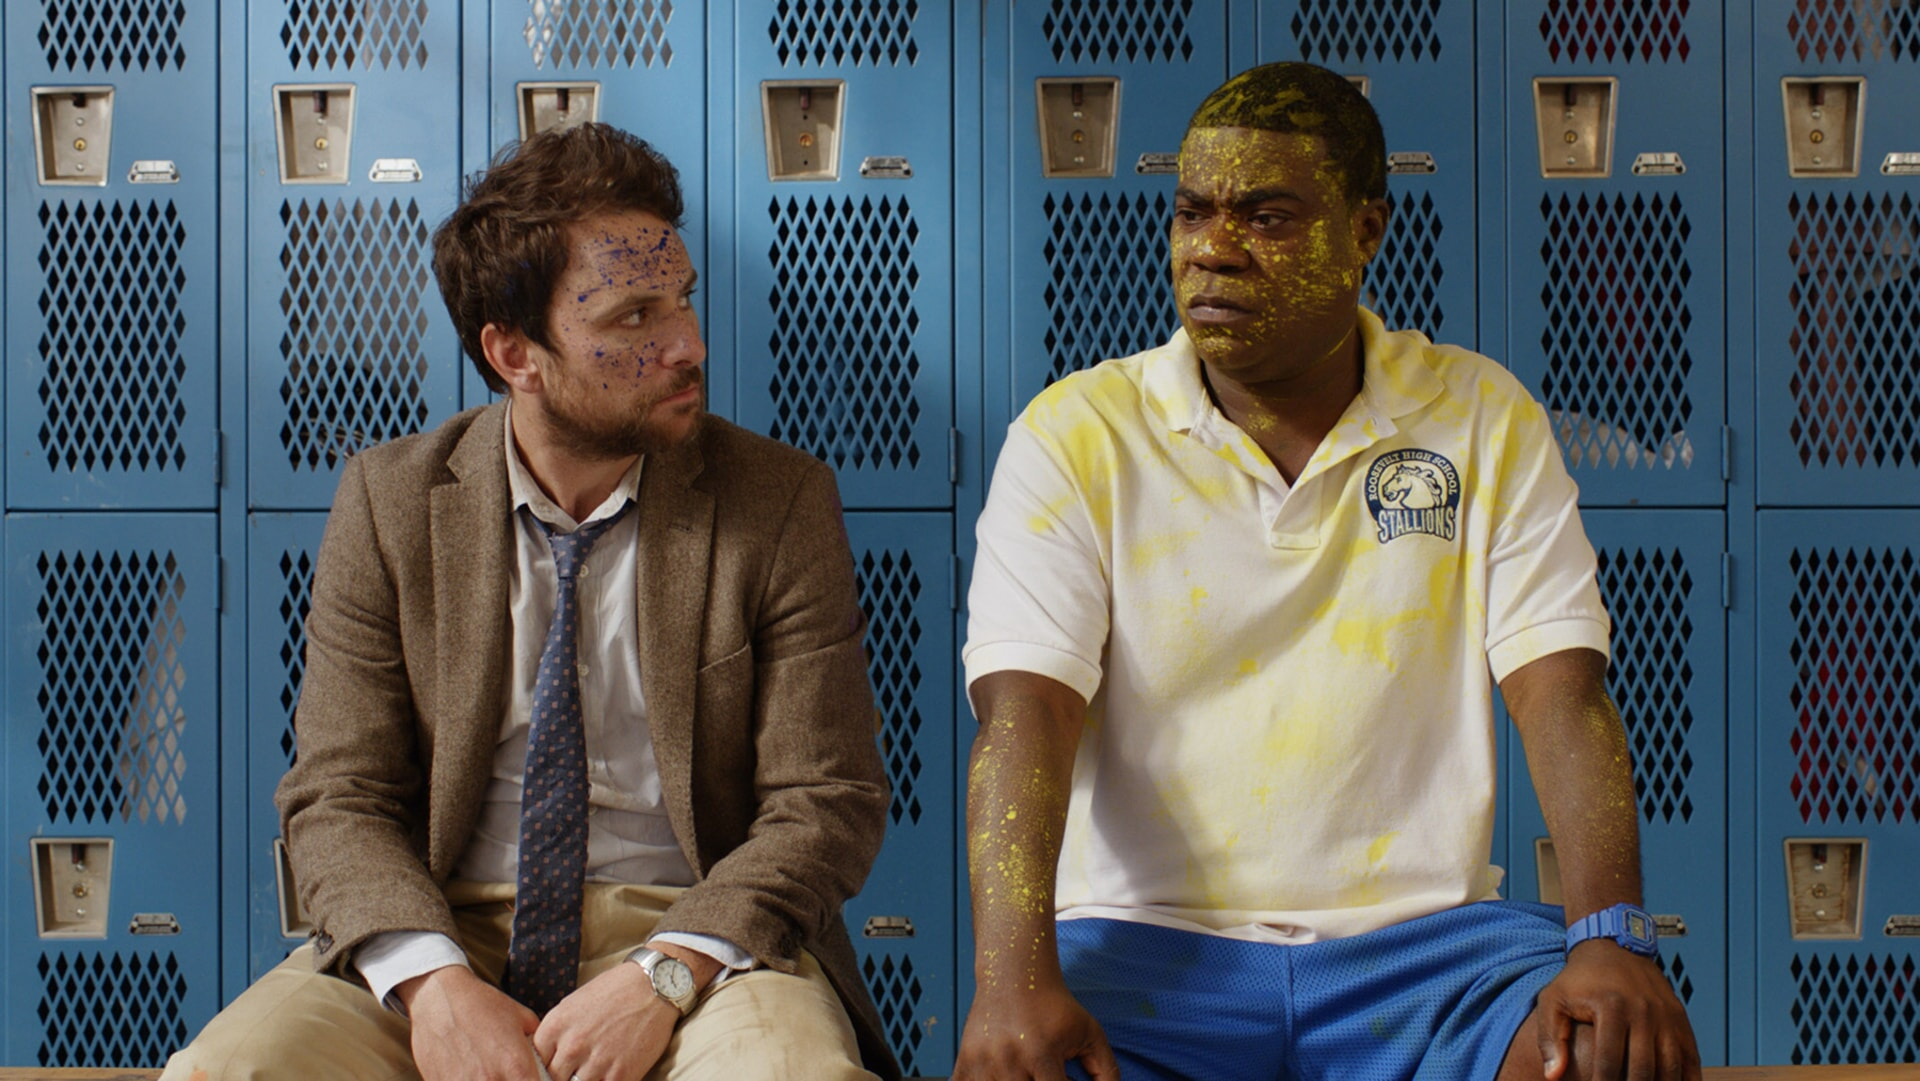 """CHARLIE DAY as Andy Campbell and TRACY MORGAN as Coach Crawford in the New Line Cinema and Village Roadshow Pictures comedy """"FIST FIGHT,"""" a Warner Bros. Pictures release."""